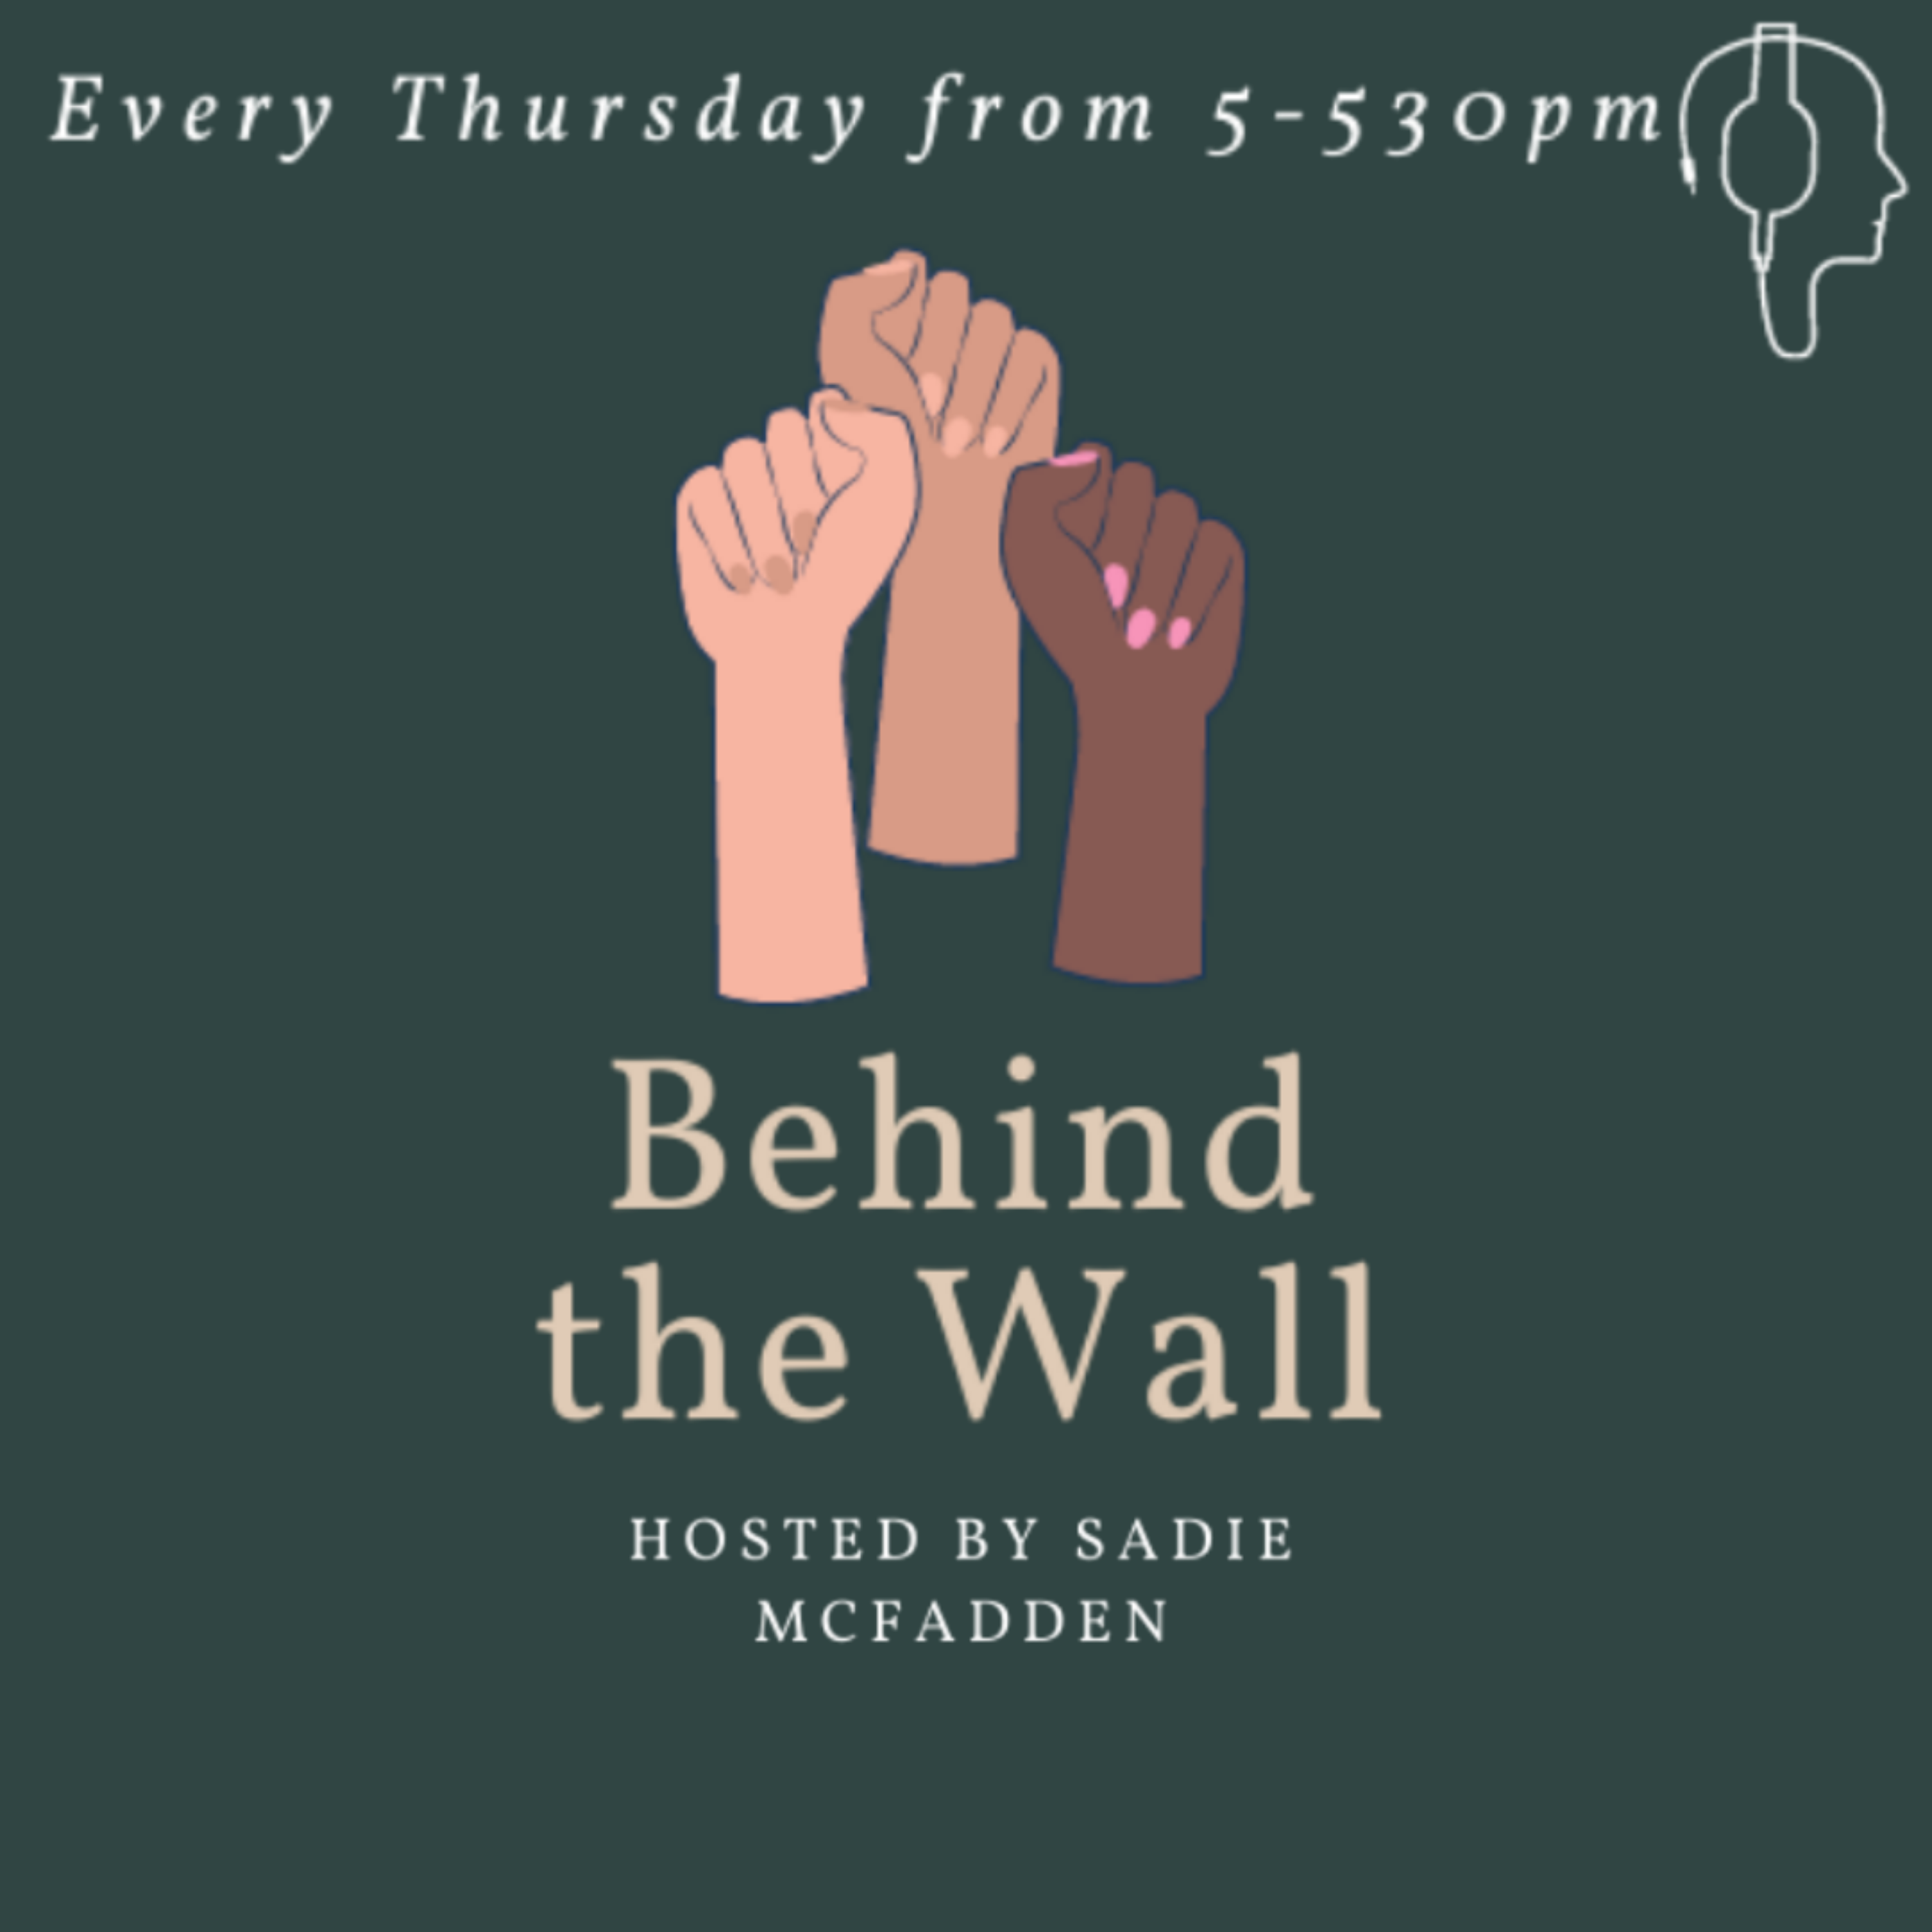 Behind the Wall - CFRC Podcast Network